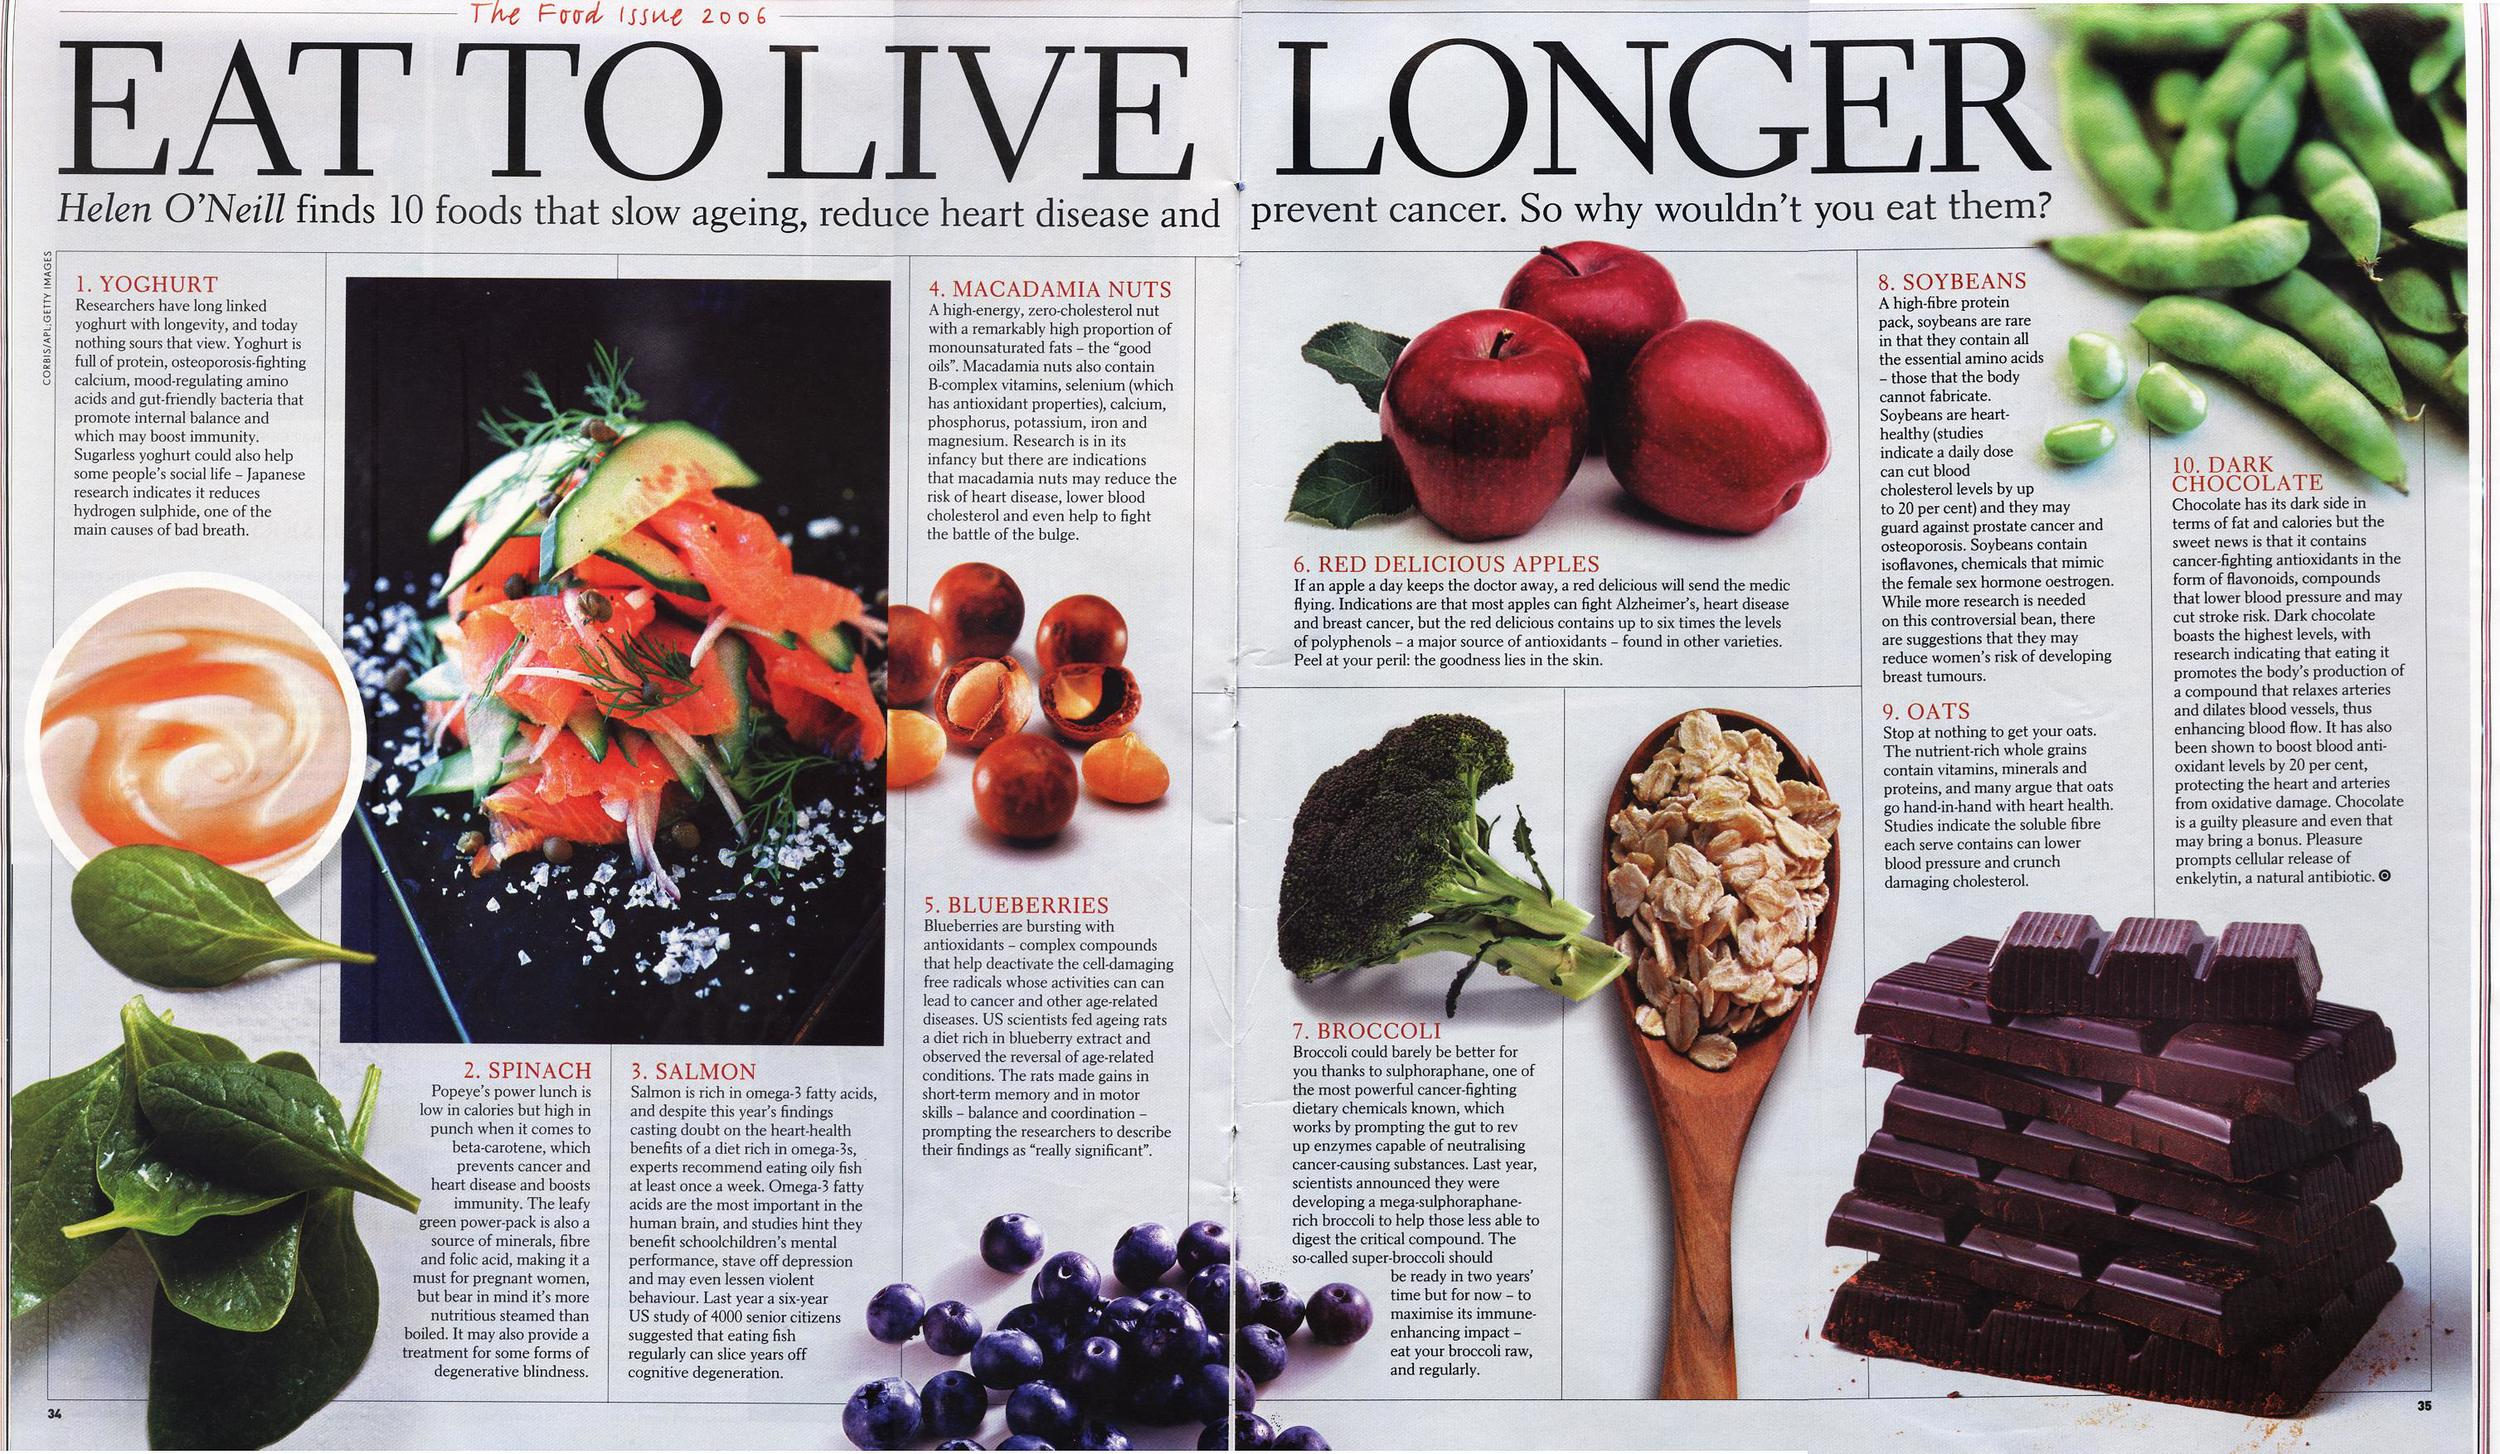 Eat_To_Live_Longer_pp34-35_Weekend_Aust_Mag_Sep_2-3_2006 (1)